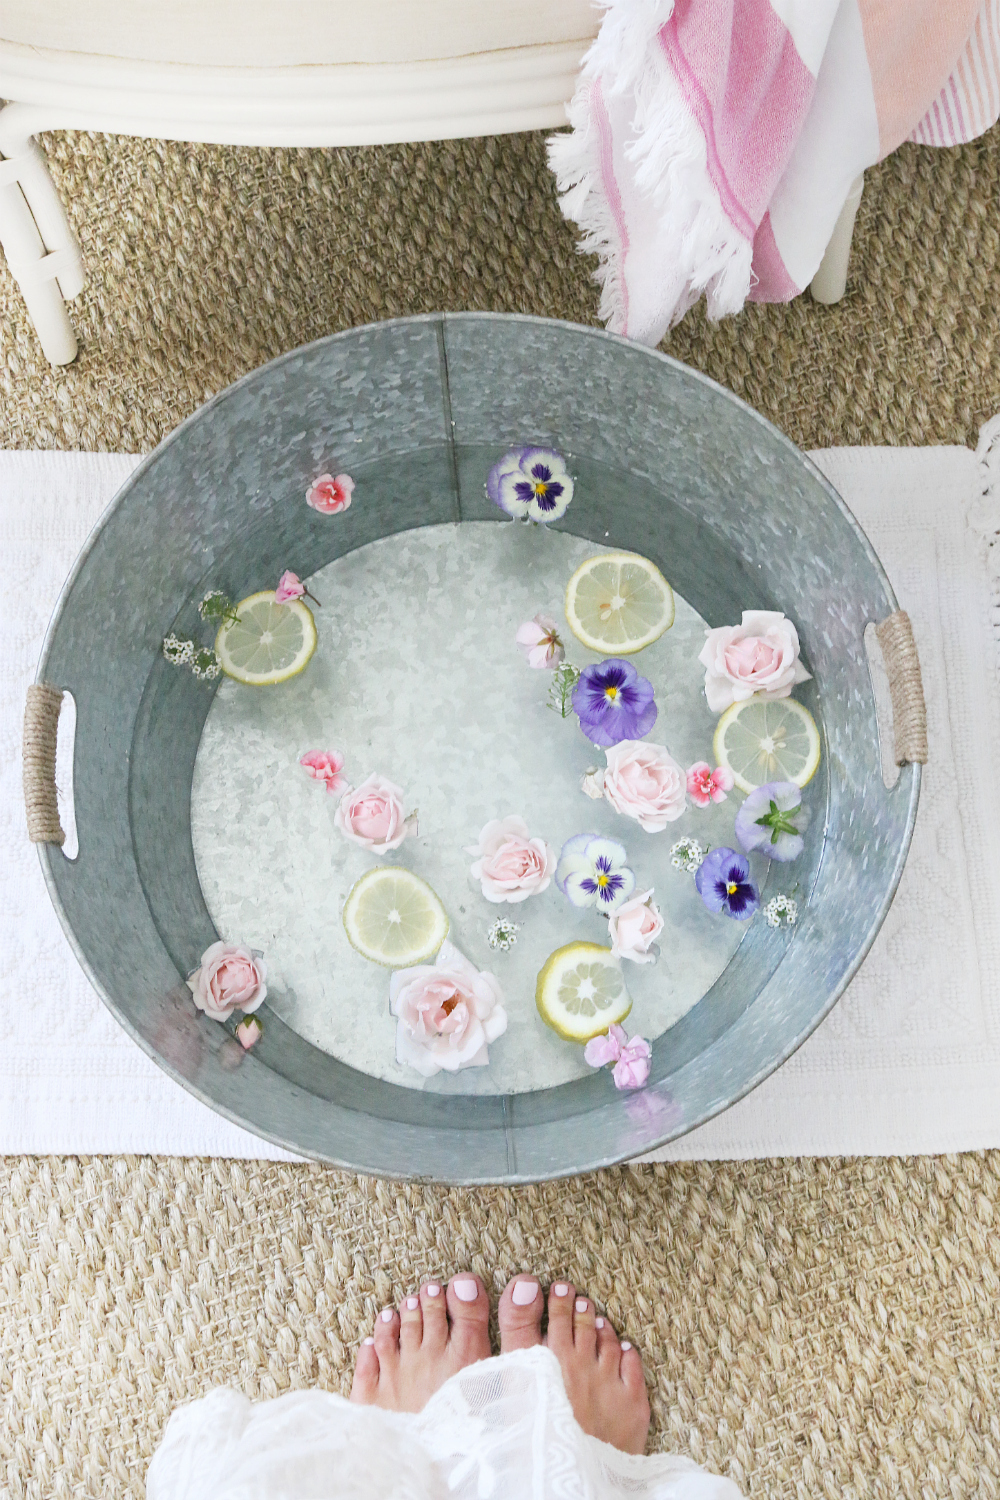 Flower Pedicure Bath